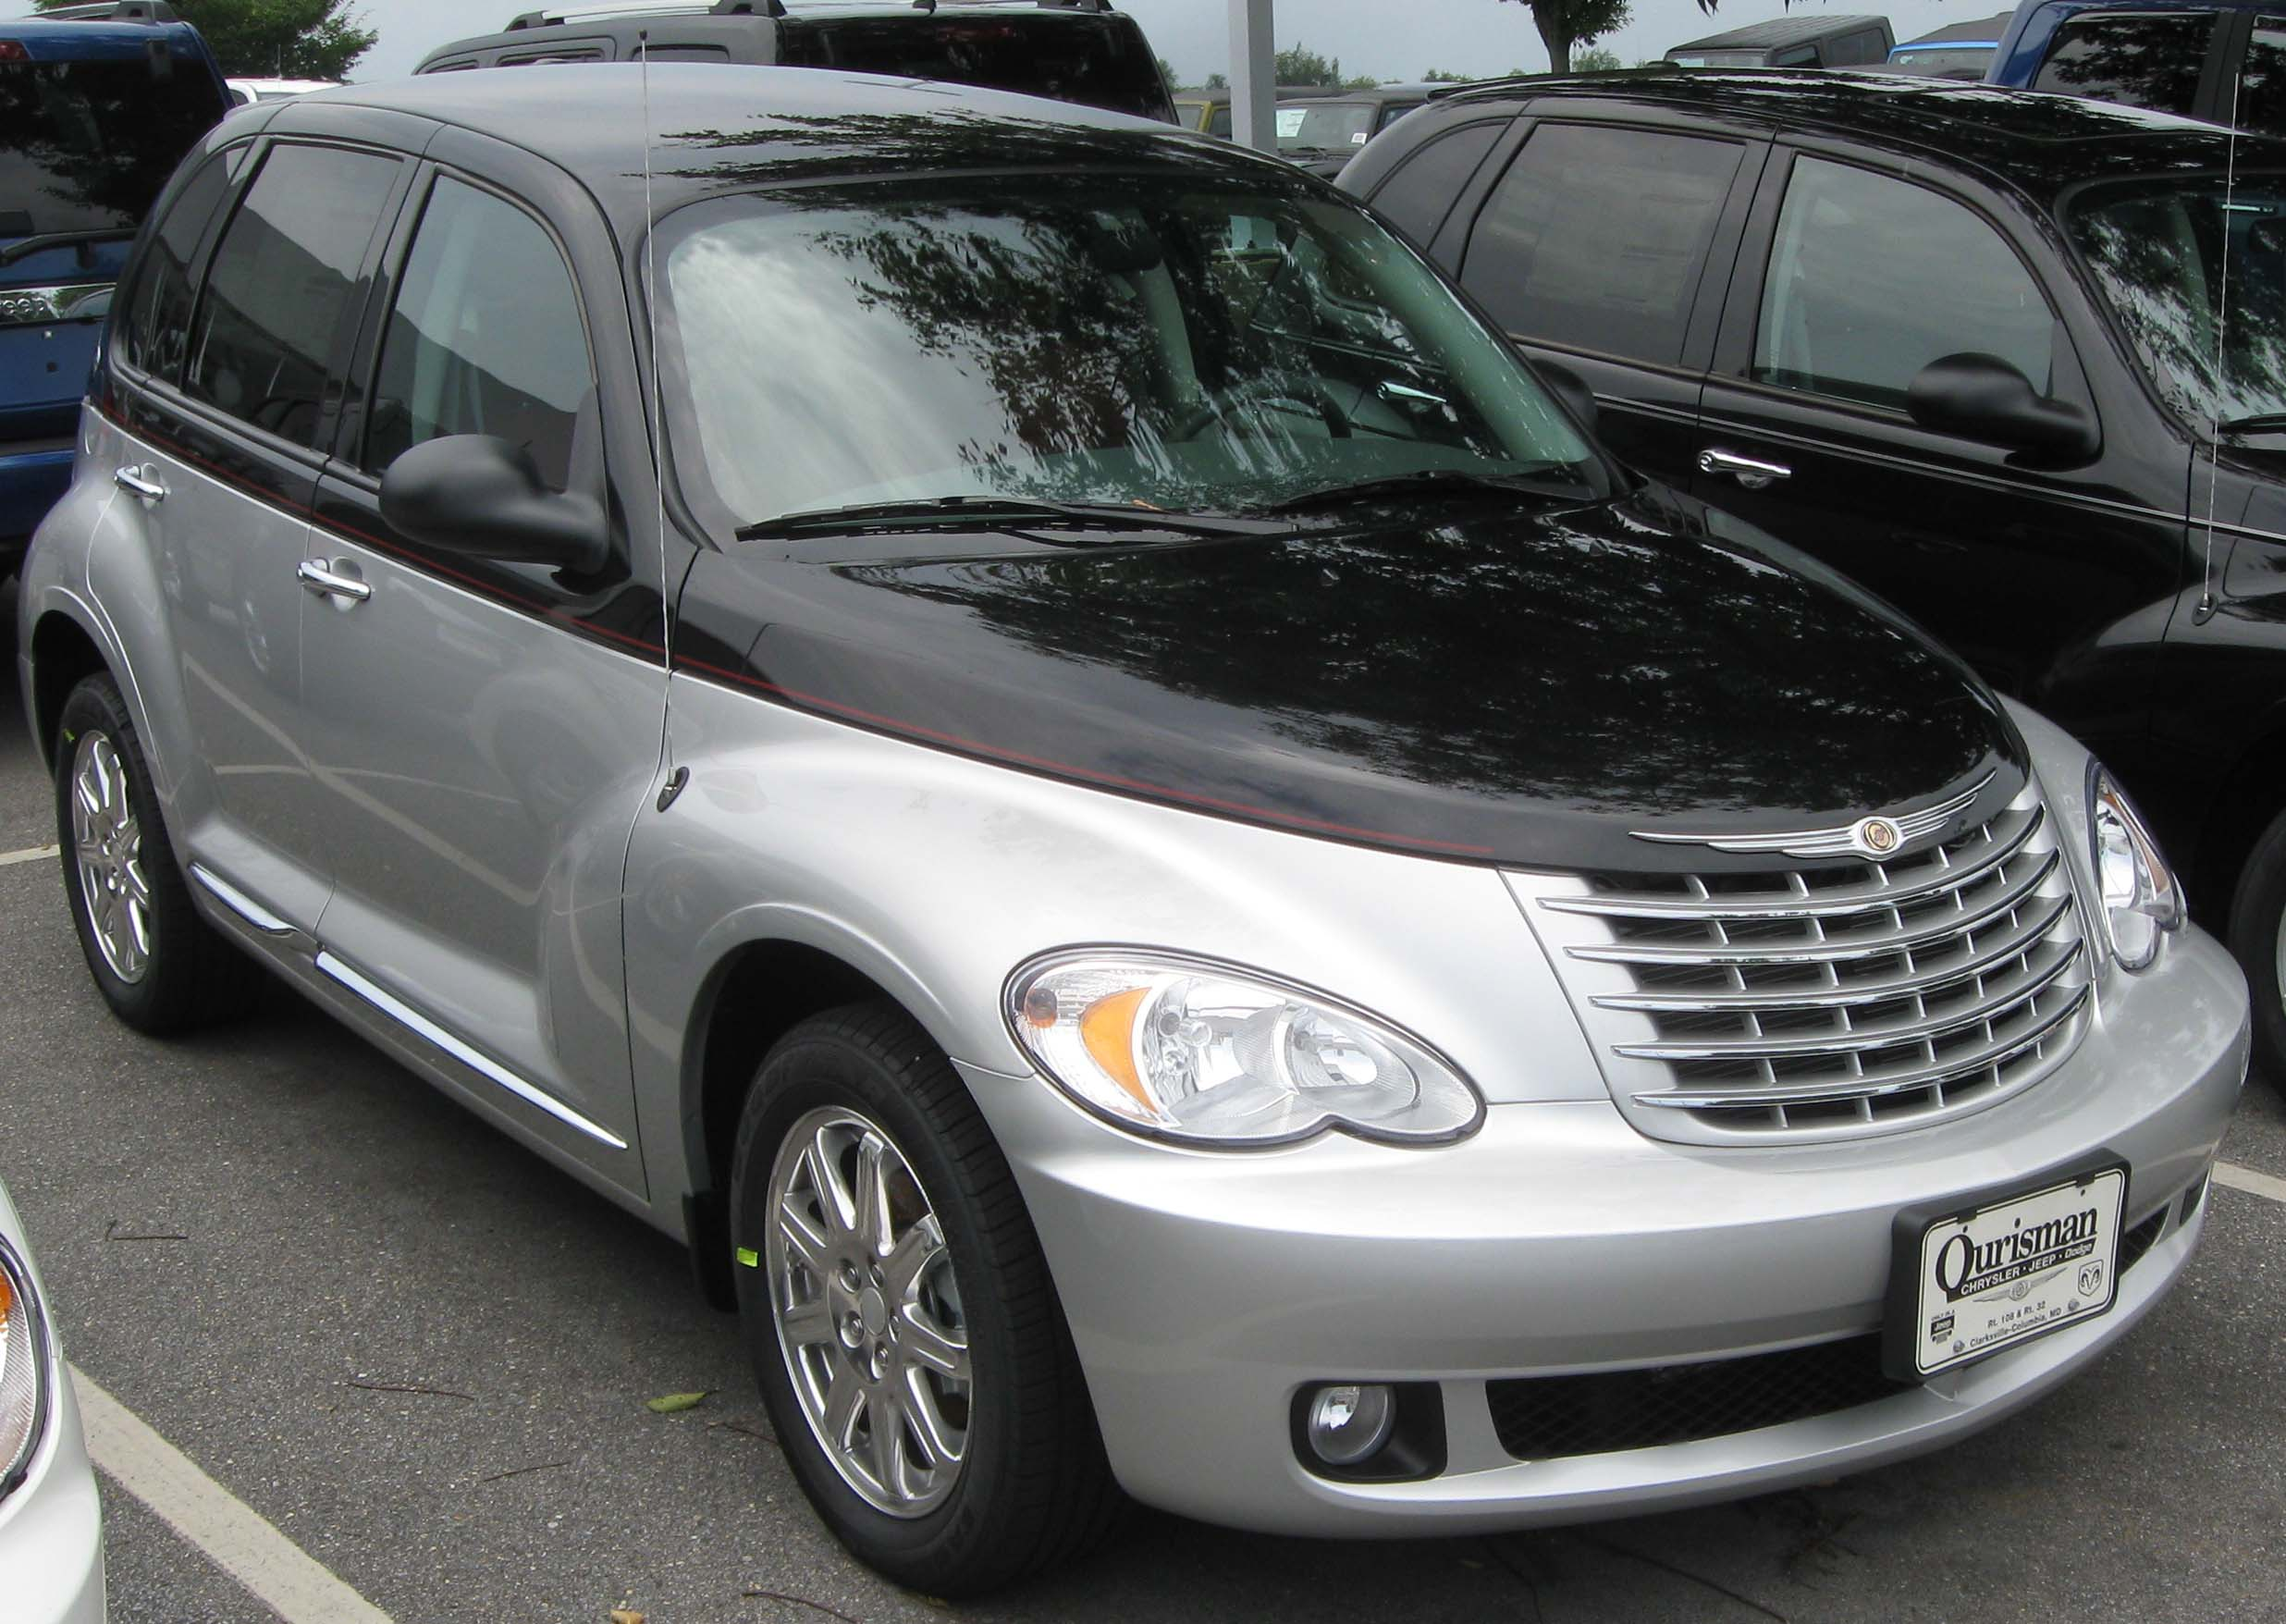 Chrysler uk pt cruiser